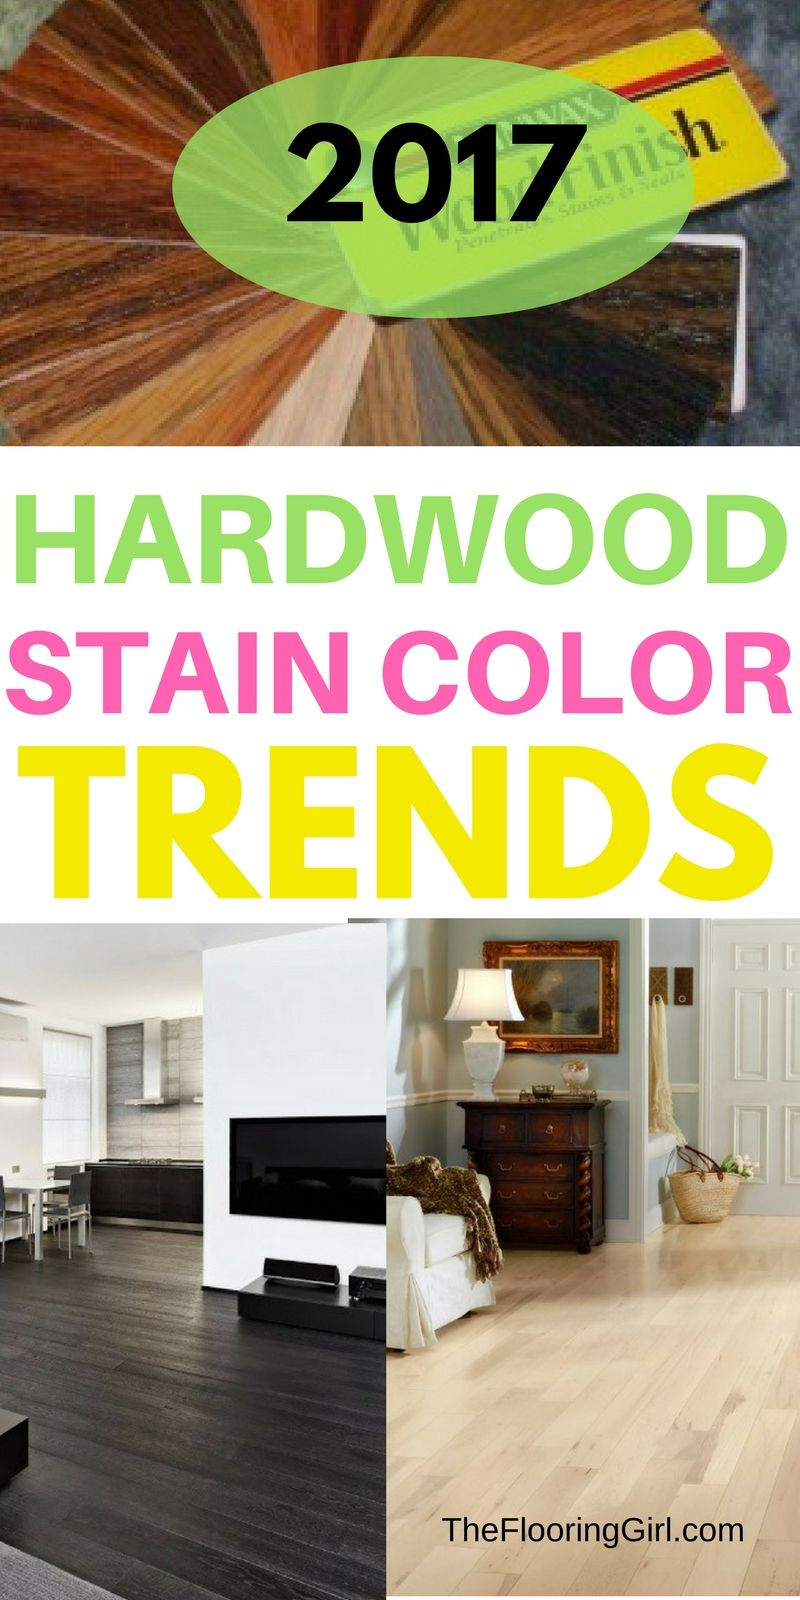 how to install hardwood floor in basement of hardwood flooring stain color trends 2018 more from the flooring with hardwood flooring stain color trends for 2017 hardwood colors that are in style theflooringgirl com